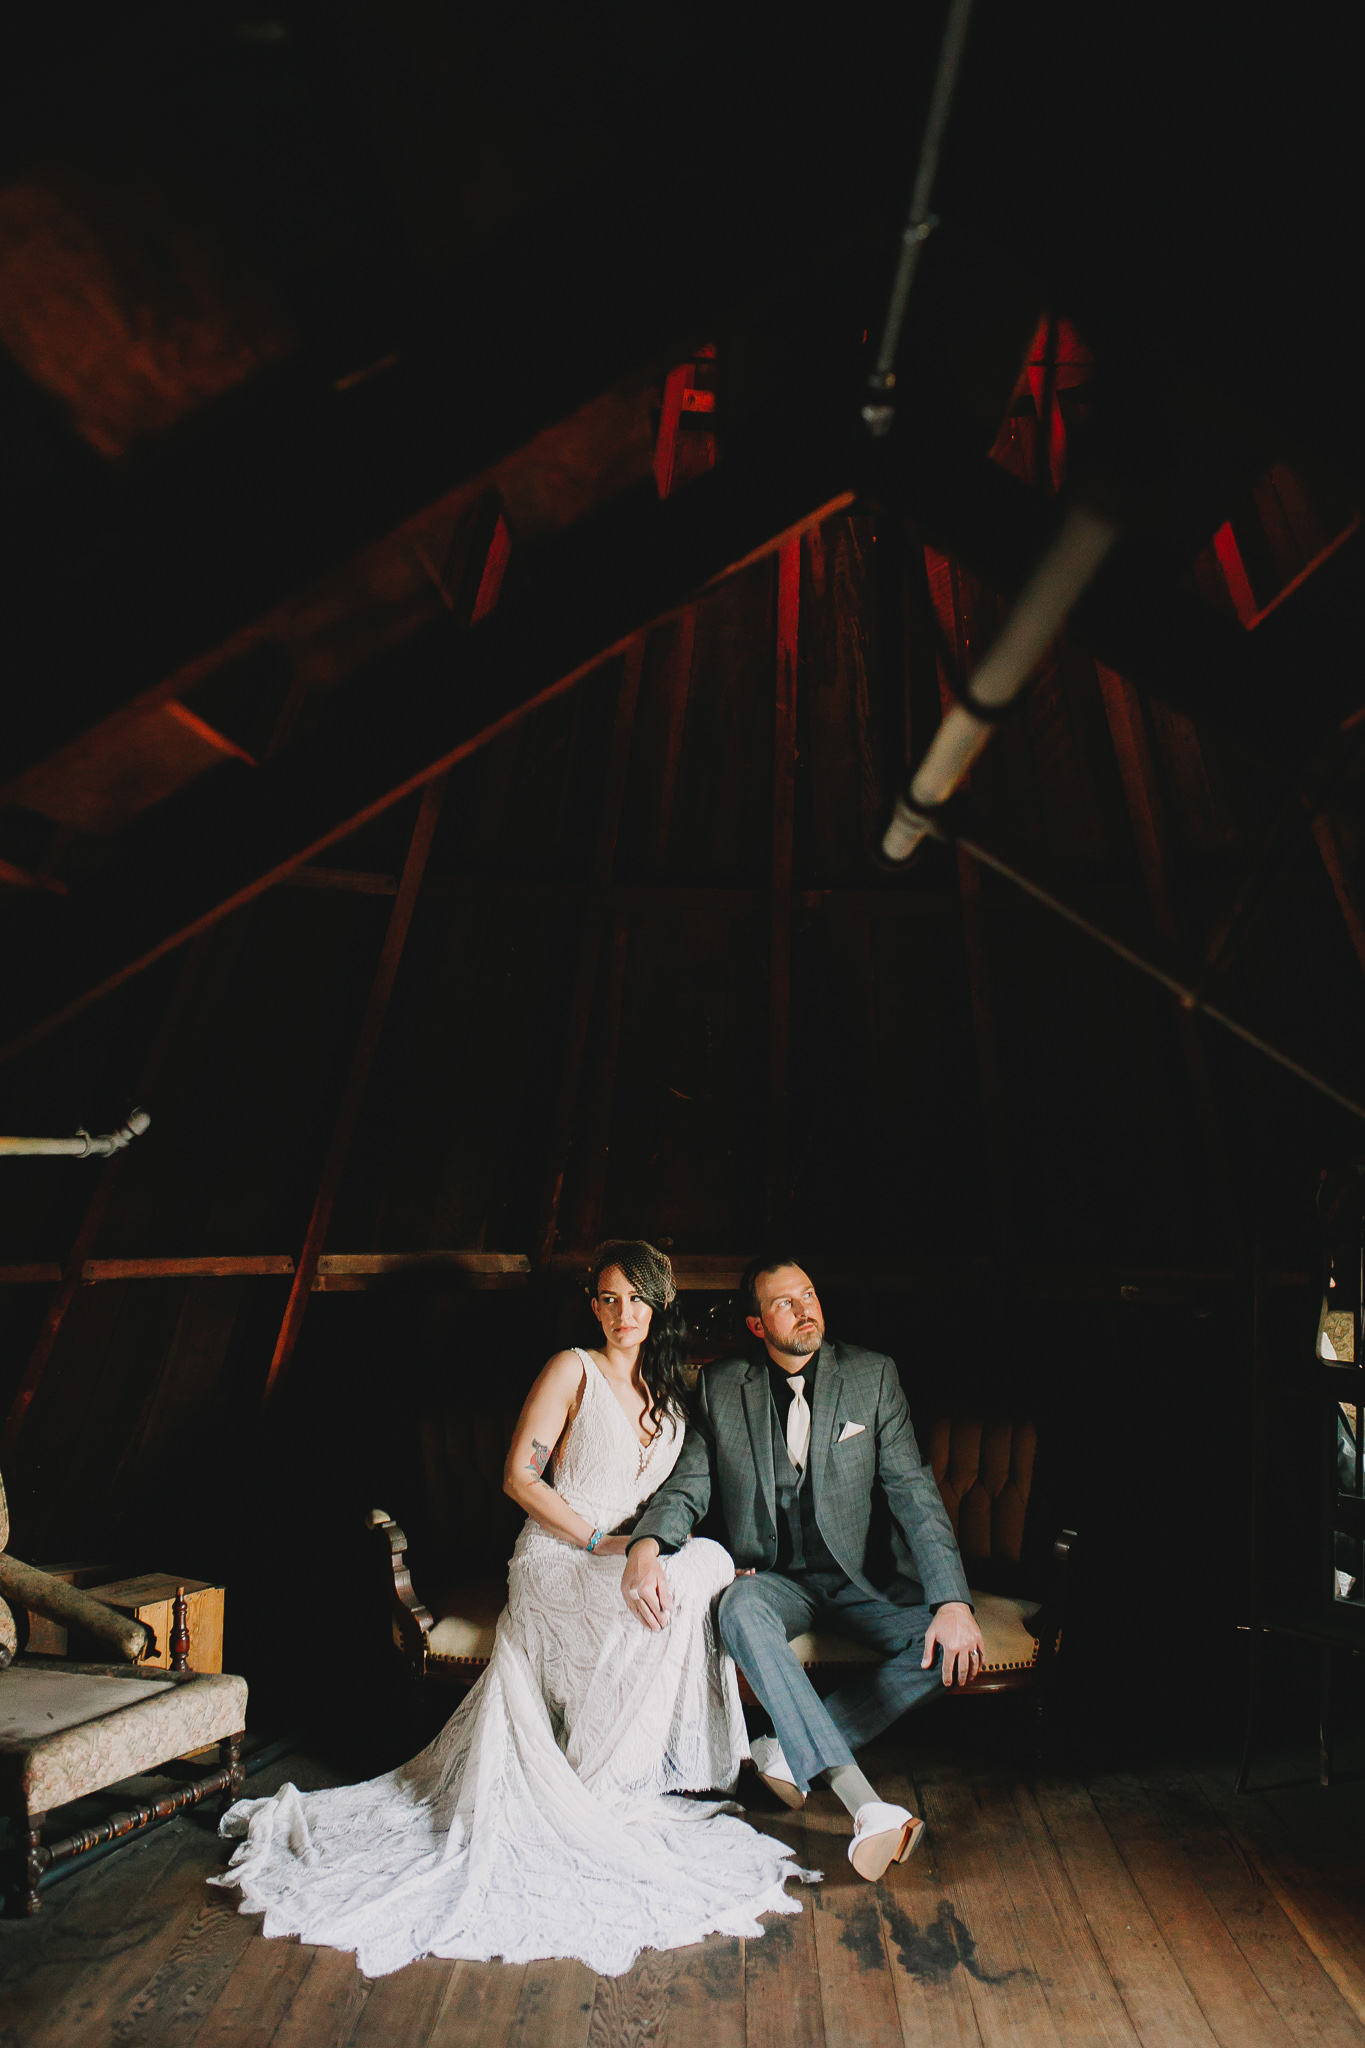 Archer Inspired Photography Sara and Aaron Winchester Mystery House NorCal San Jose California Wedding Photographer-334.jpg